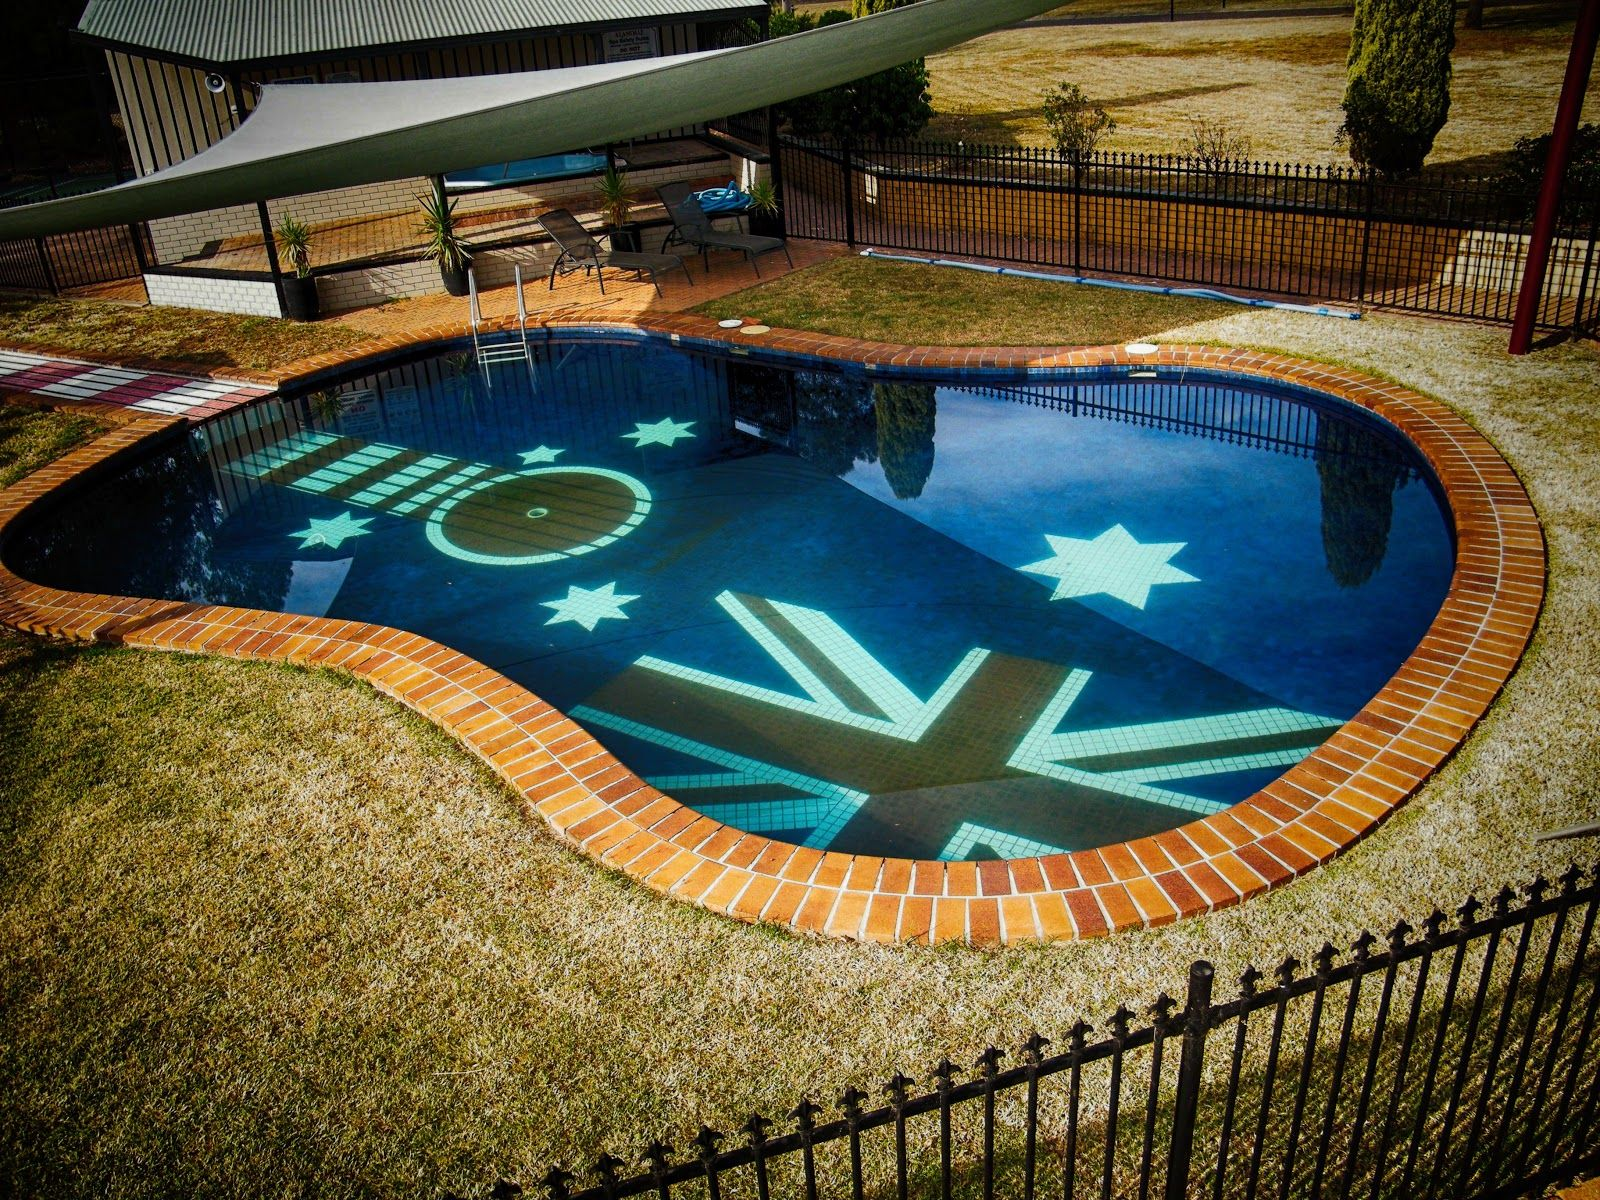 exterior designs, awesome guitar shaped swimming pool with tree